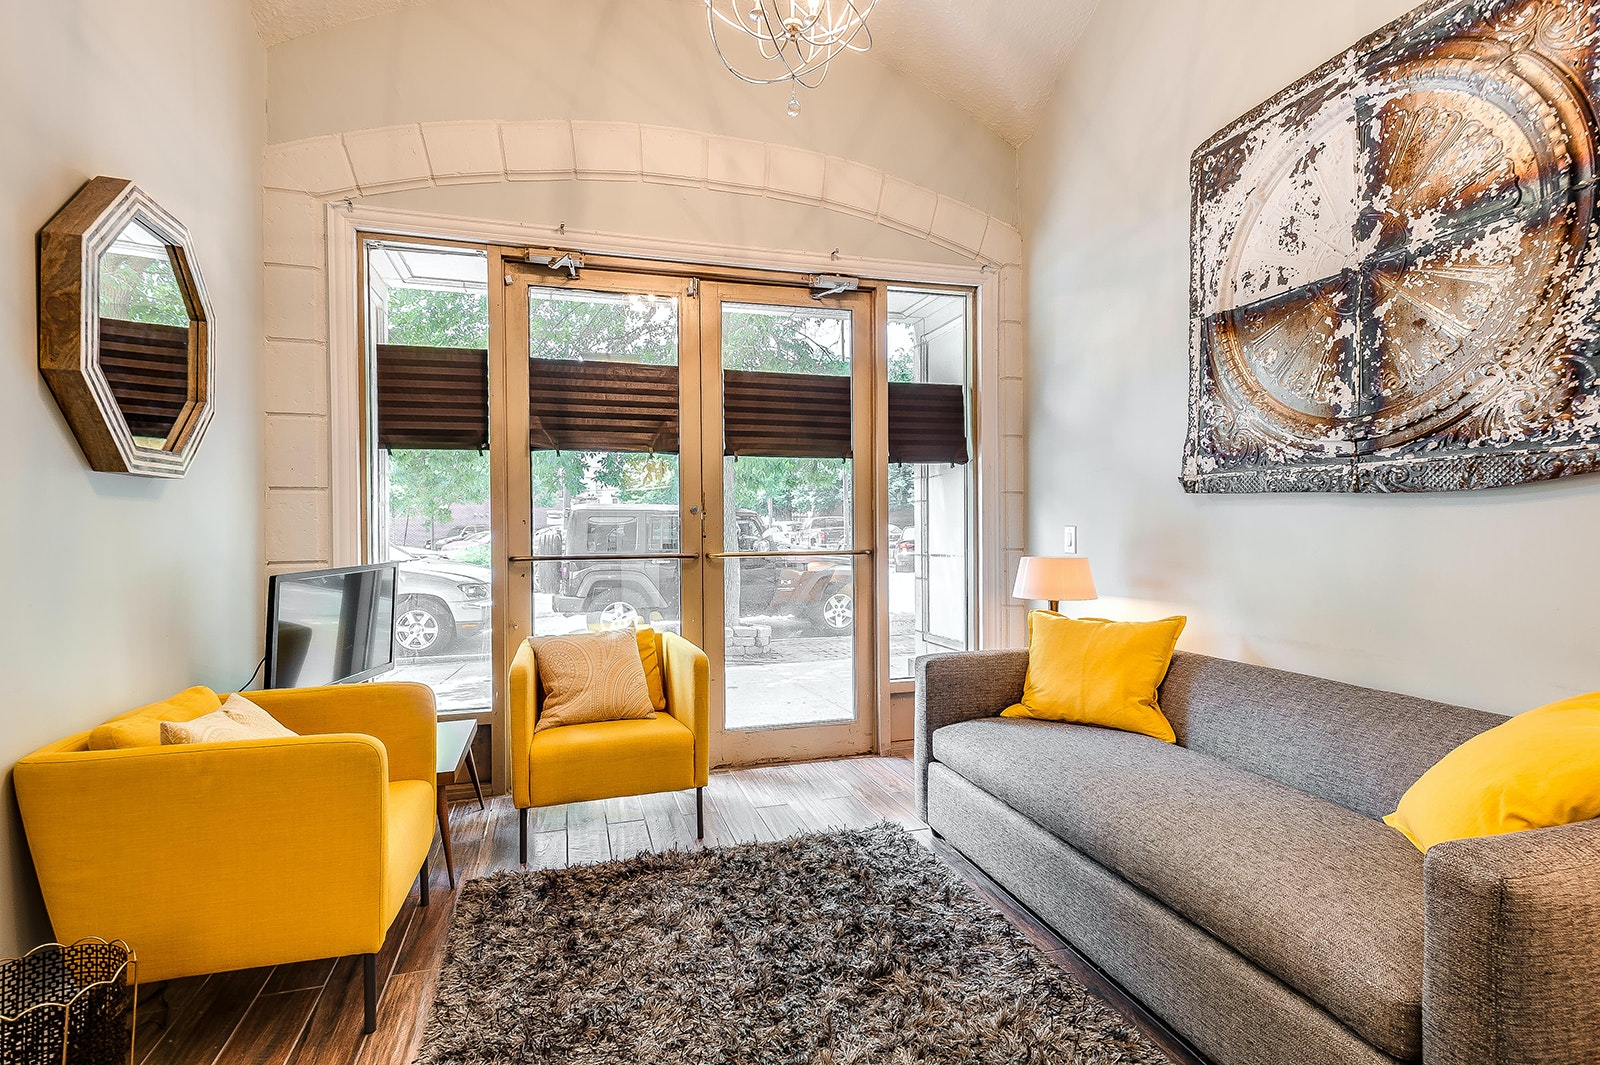 This stylish stay, set within a renovated former hotel dating to the 1920s, is steps away from Lincoln Park.